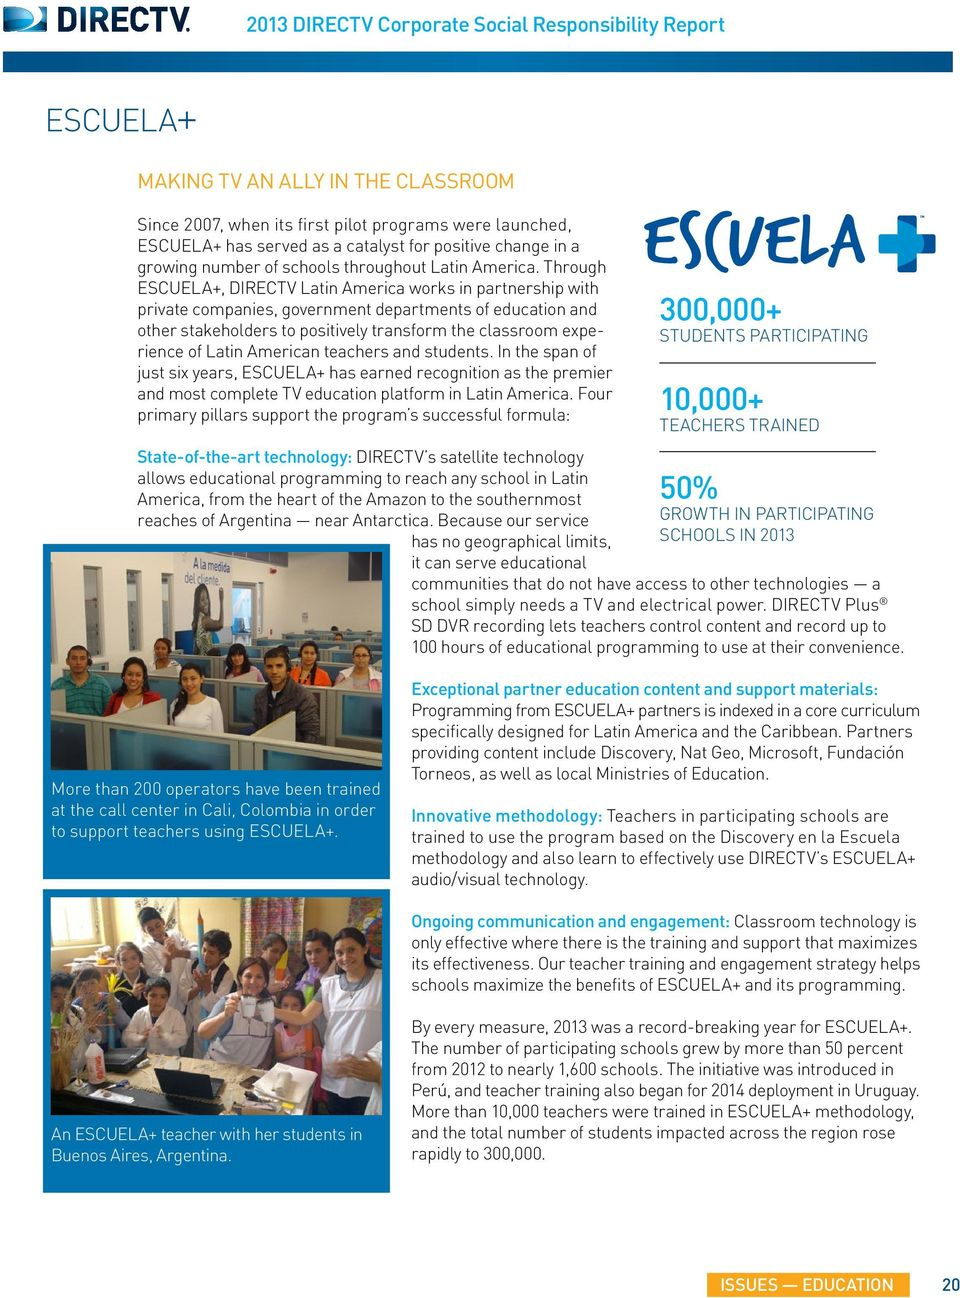 Through ESCUELA+, DIRECTV Latin America works in partnership with private companies, government departments of education and other stakeholders to positively transform the classroom experience of